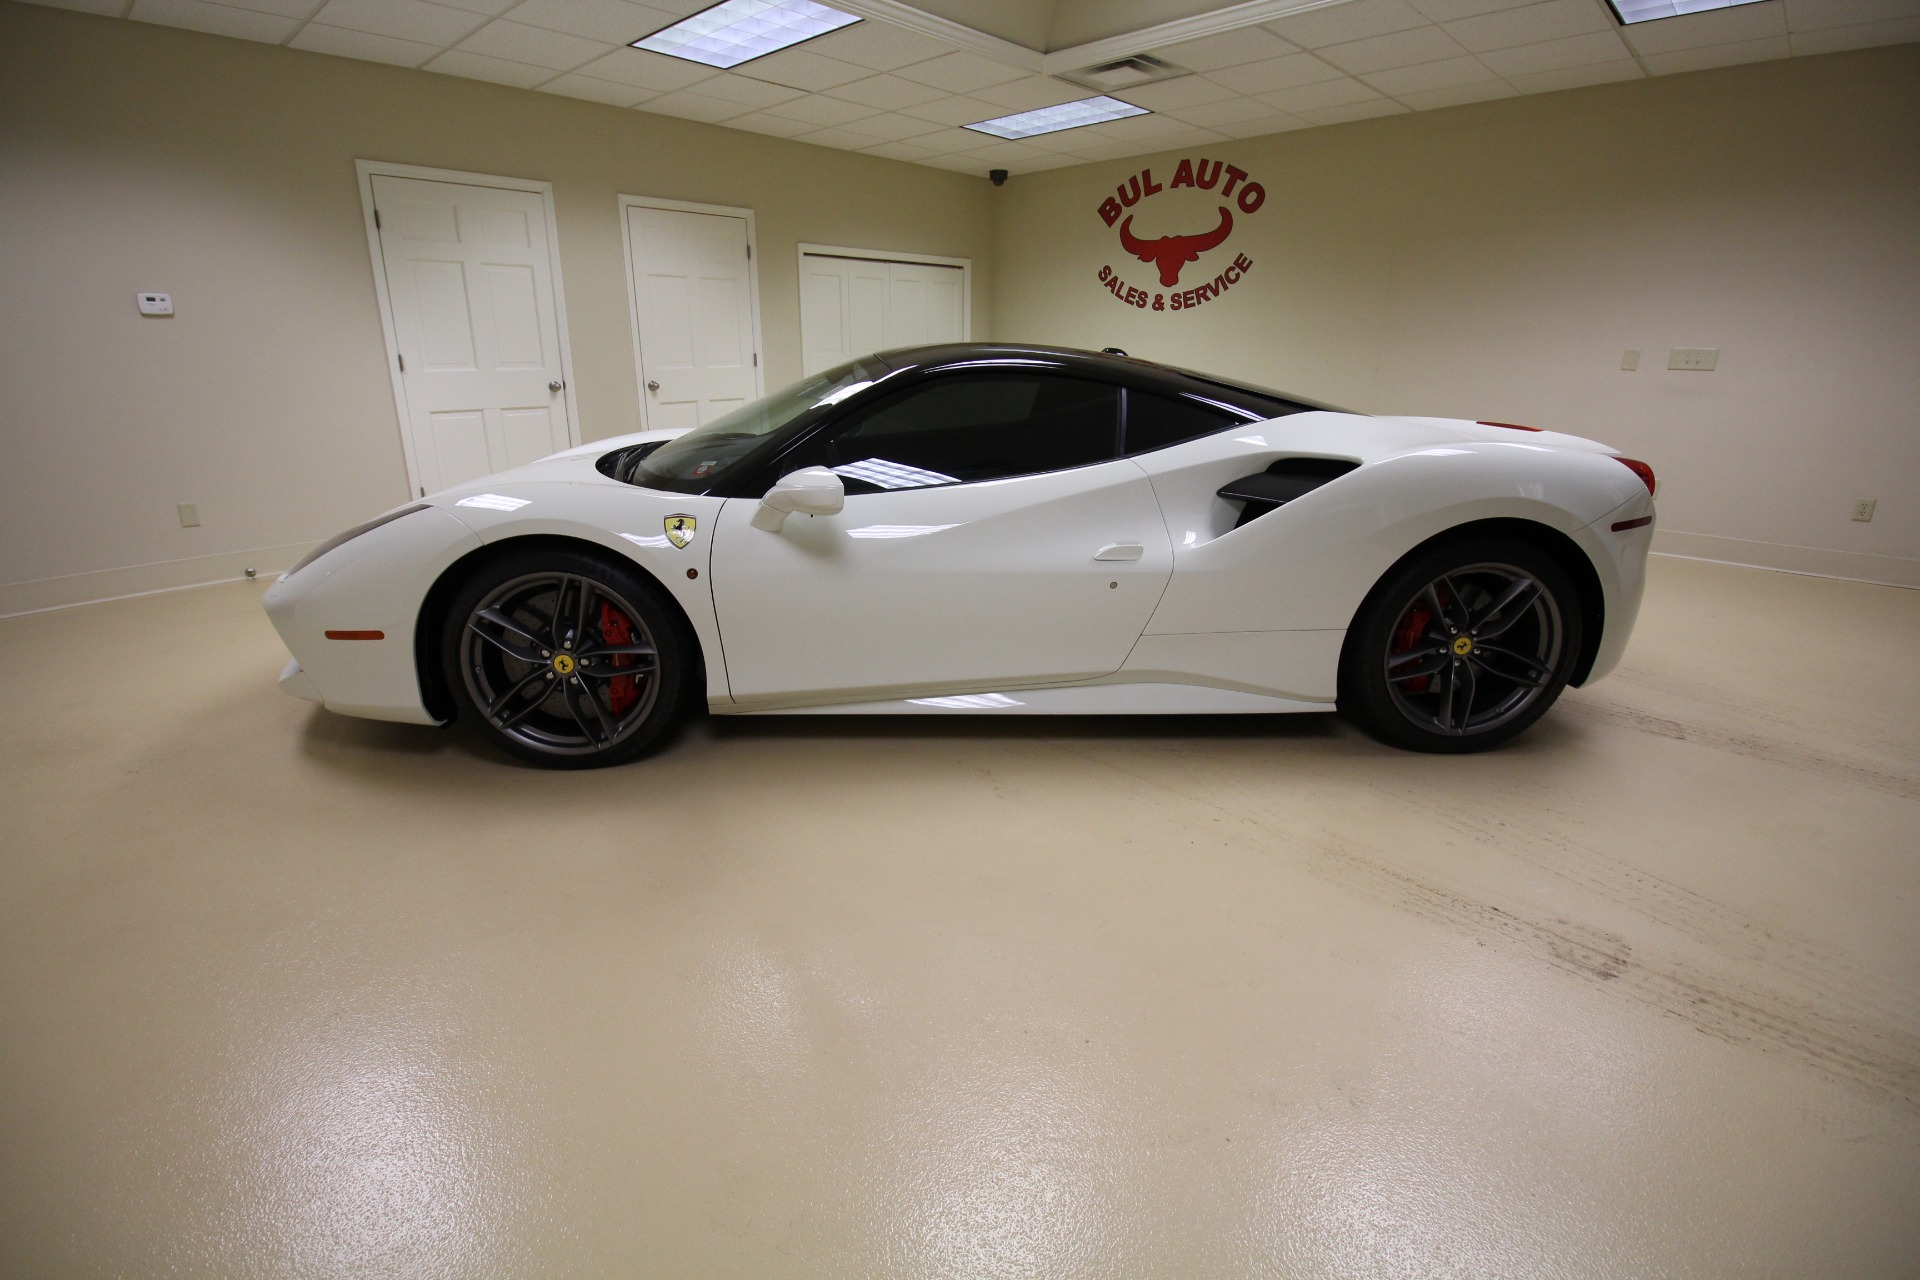 Used 2018 Ferrari 488 GTB Coupe SUPER WELL OPTIONED SUPER LOW MILES | Albany, NY